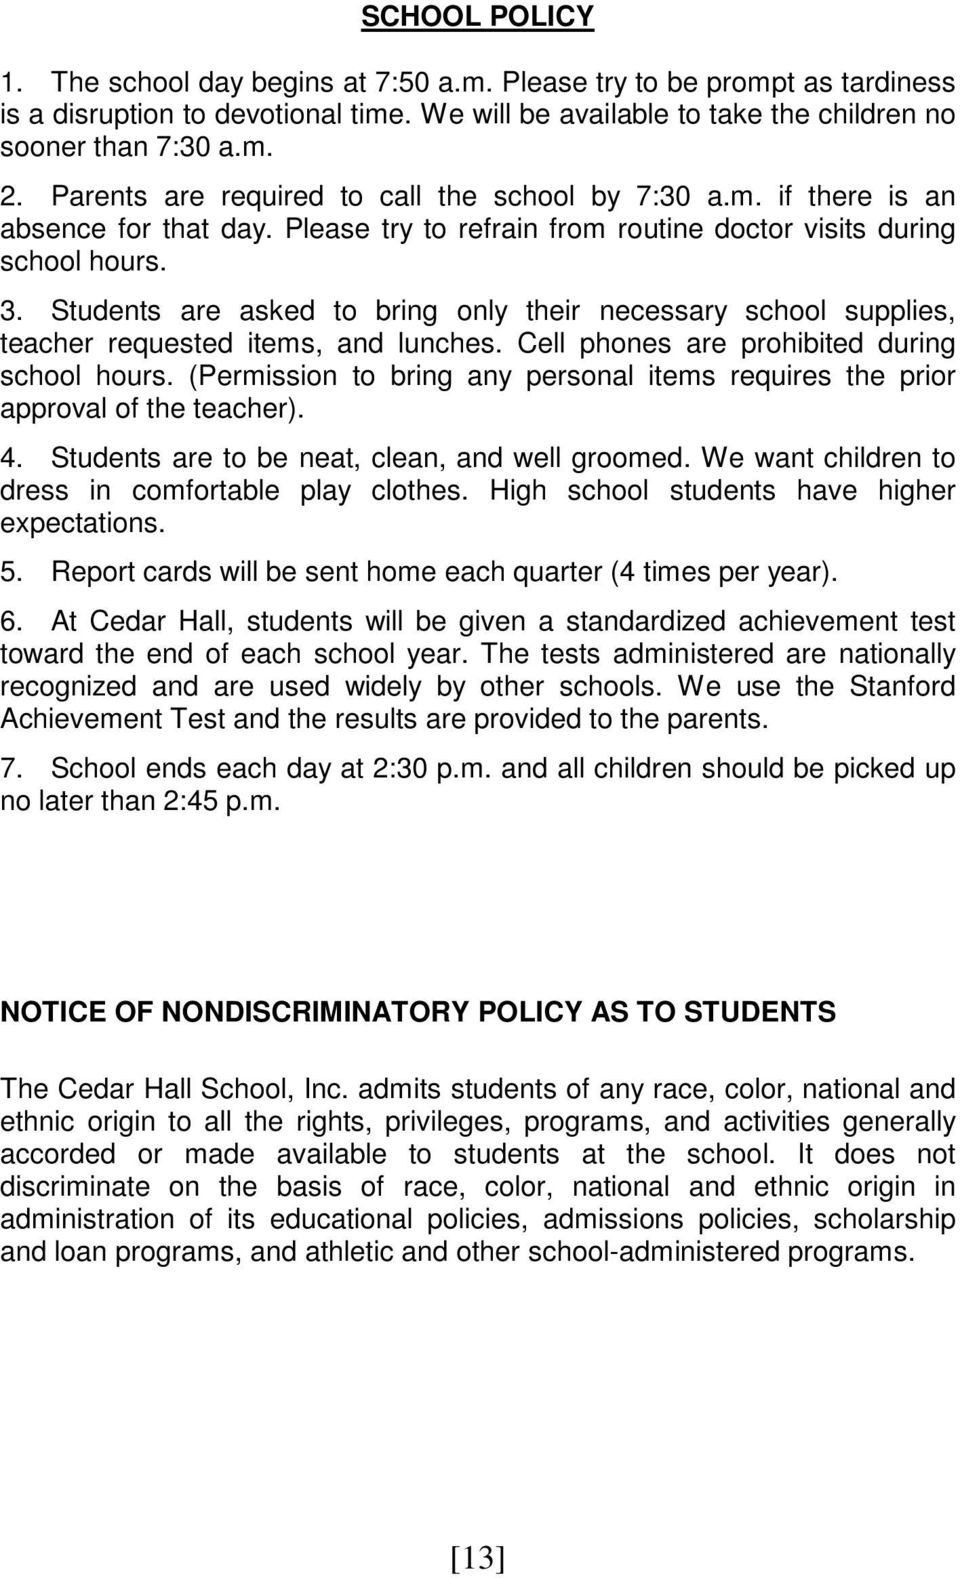 Students are asked to bring only their necessary school supplies, teacher requested items, and lunches. Cell phones are prohibited during school hours.